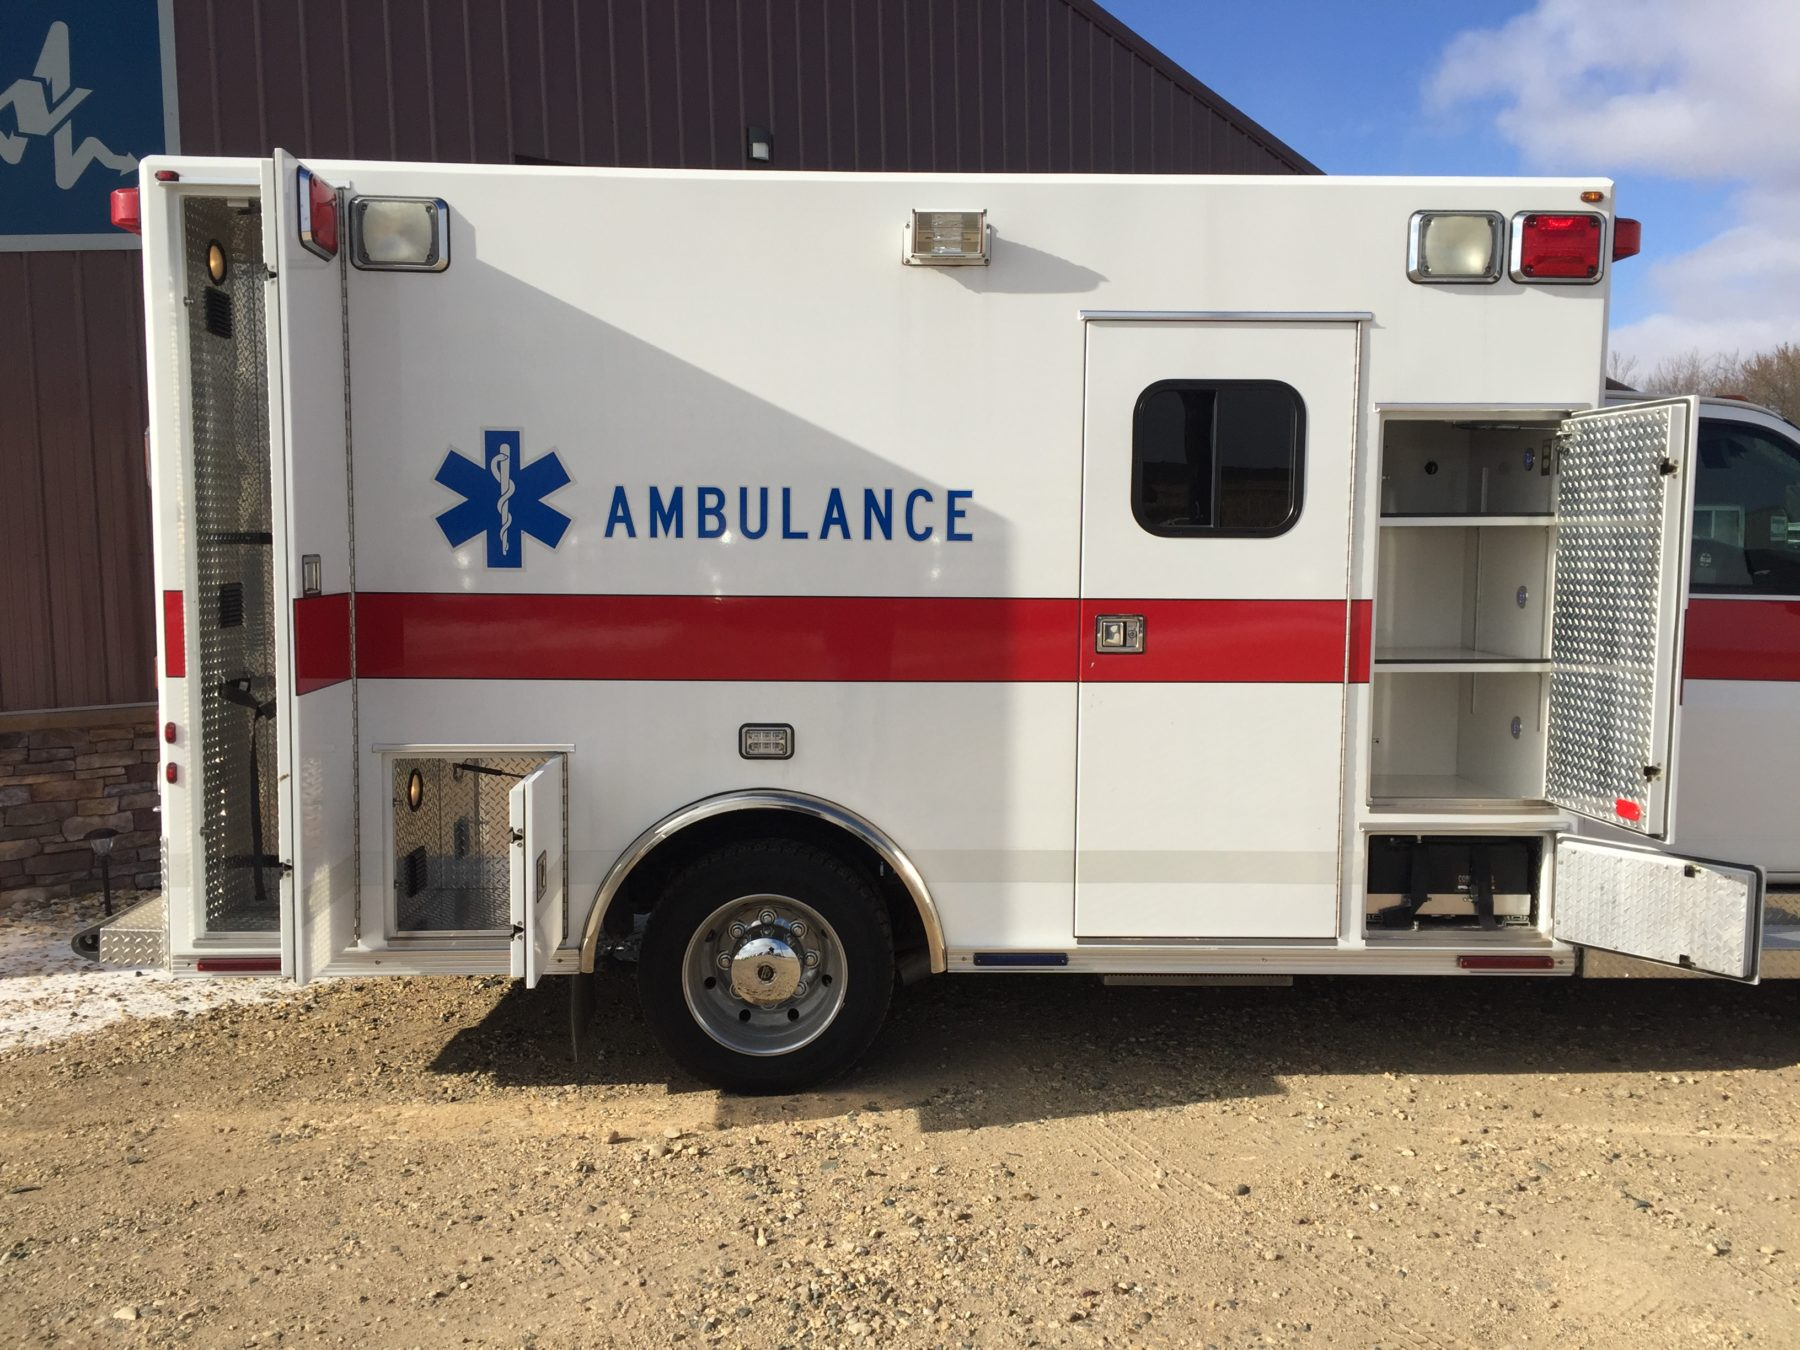 2009 Chevrolet C4500 Heavy Duty Ambulance For Sale – Picture 5